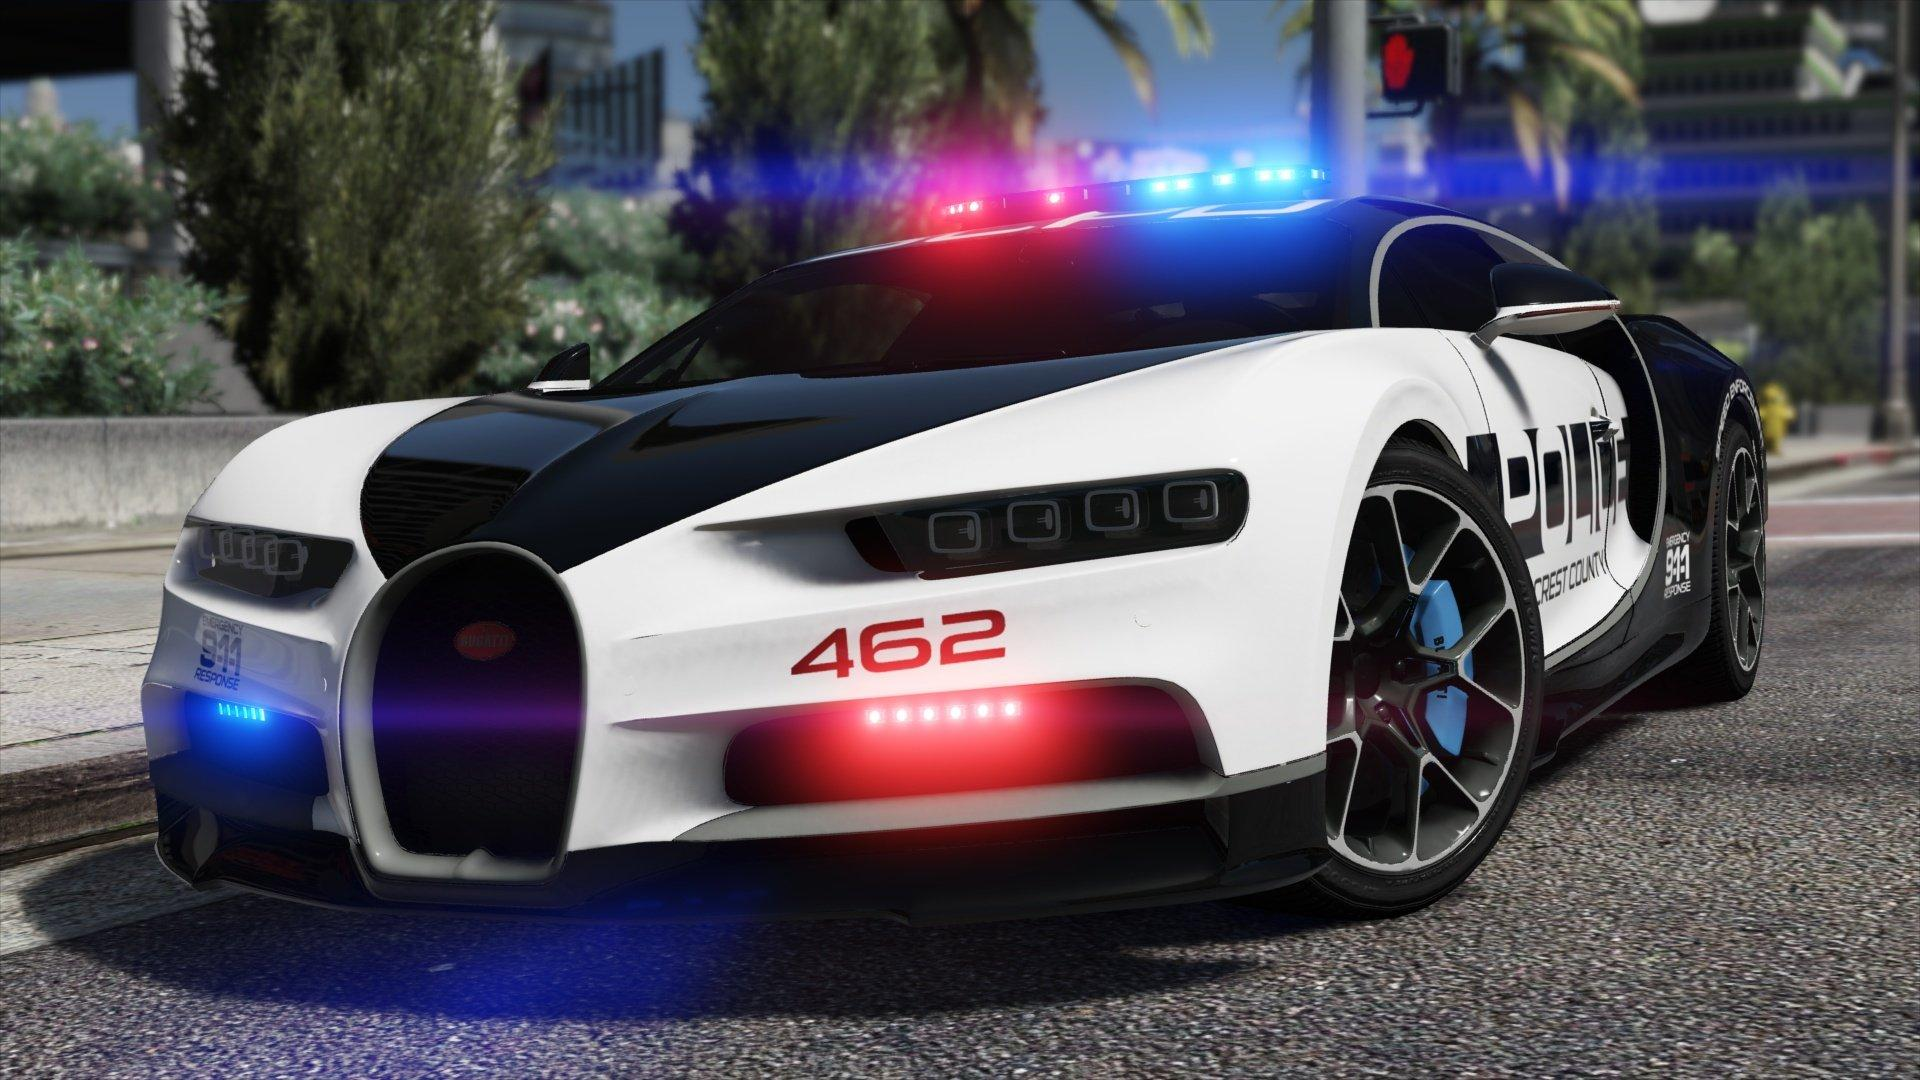 Gta 5 Cars Wallpaper Download Bugatti Chiron Hot Pursuit Police Add On Replace